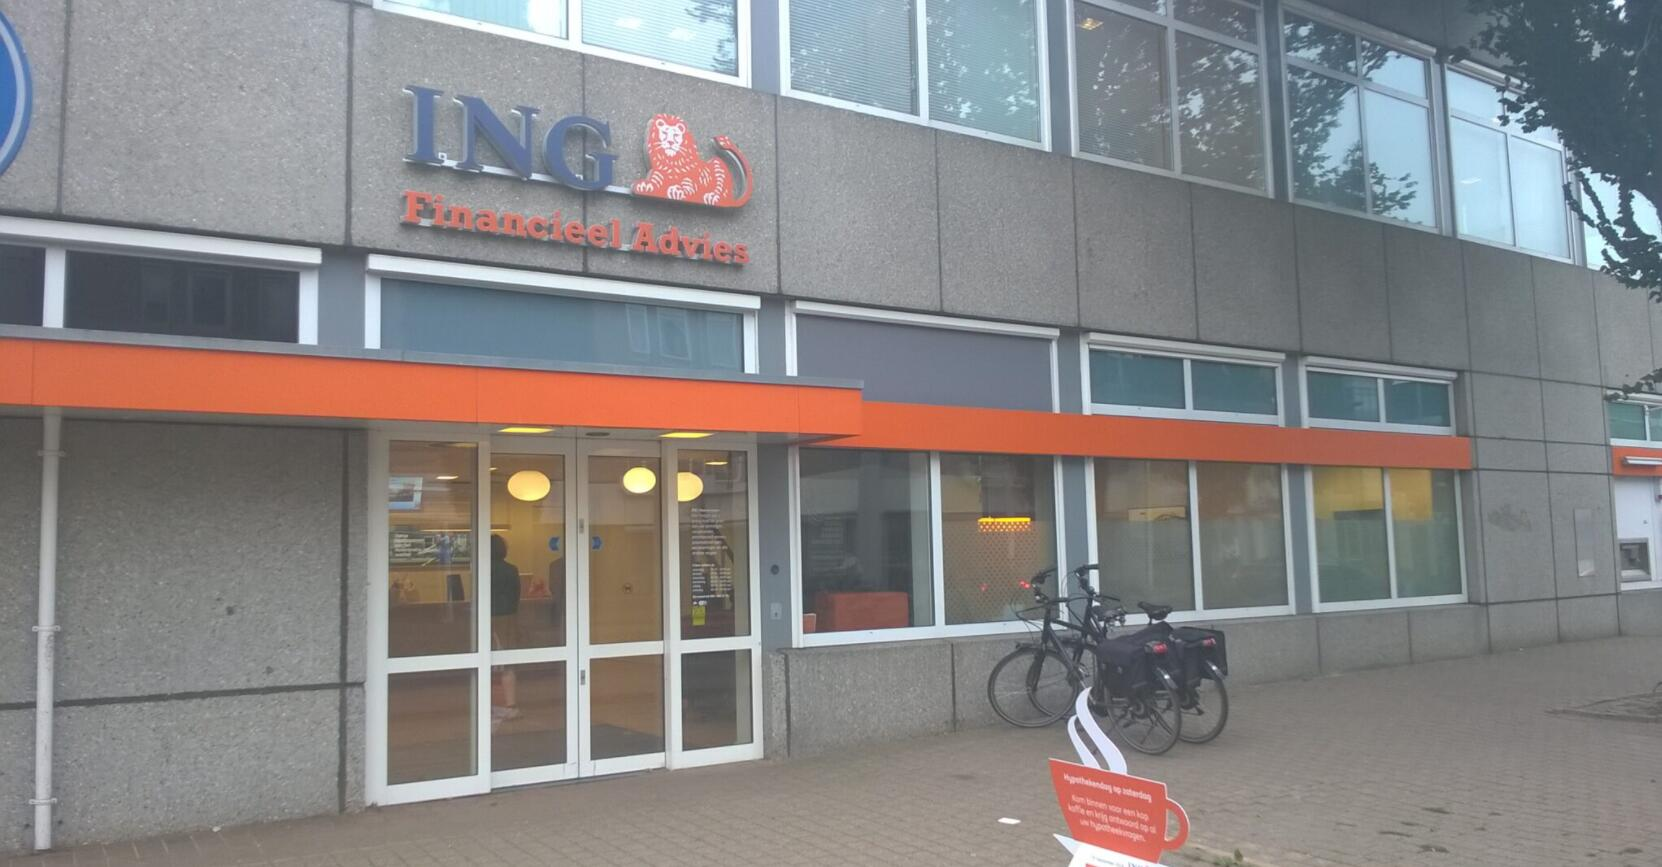 ING agency in the city of Heerenveen